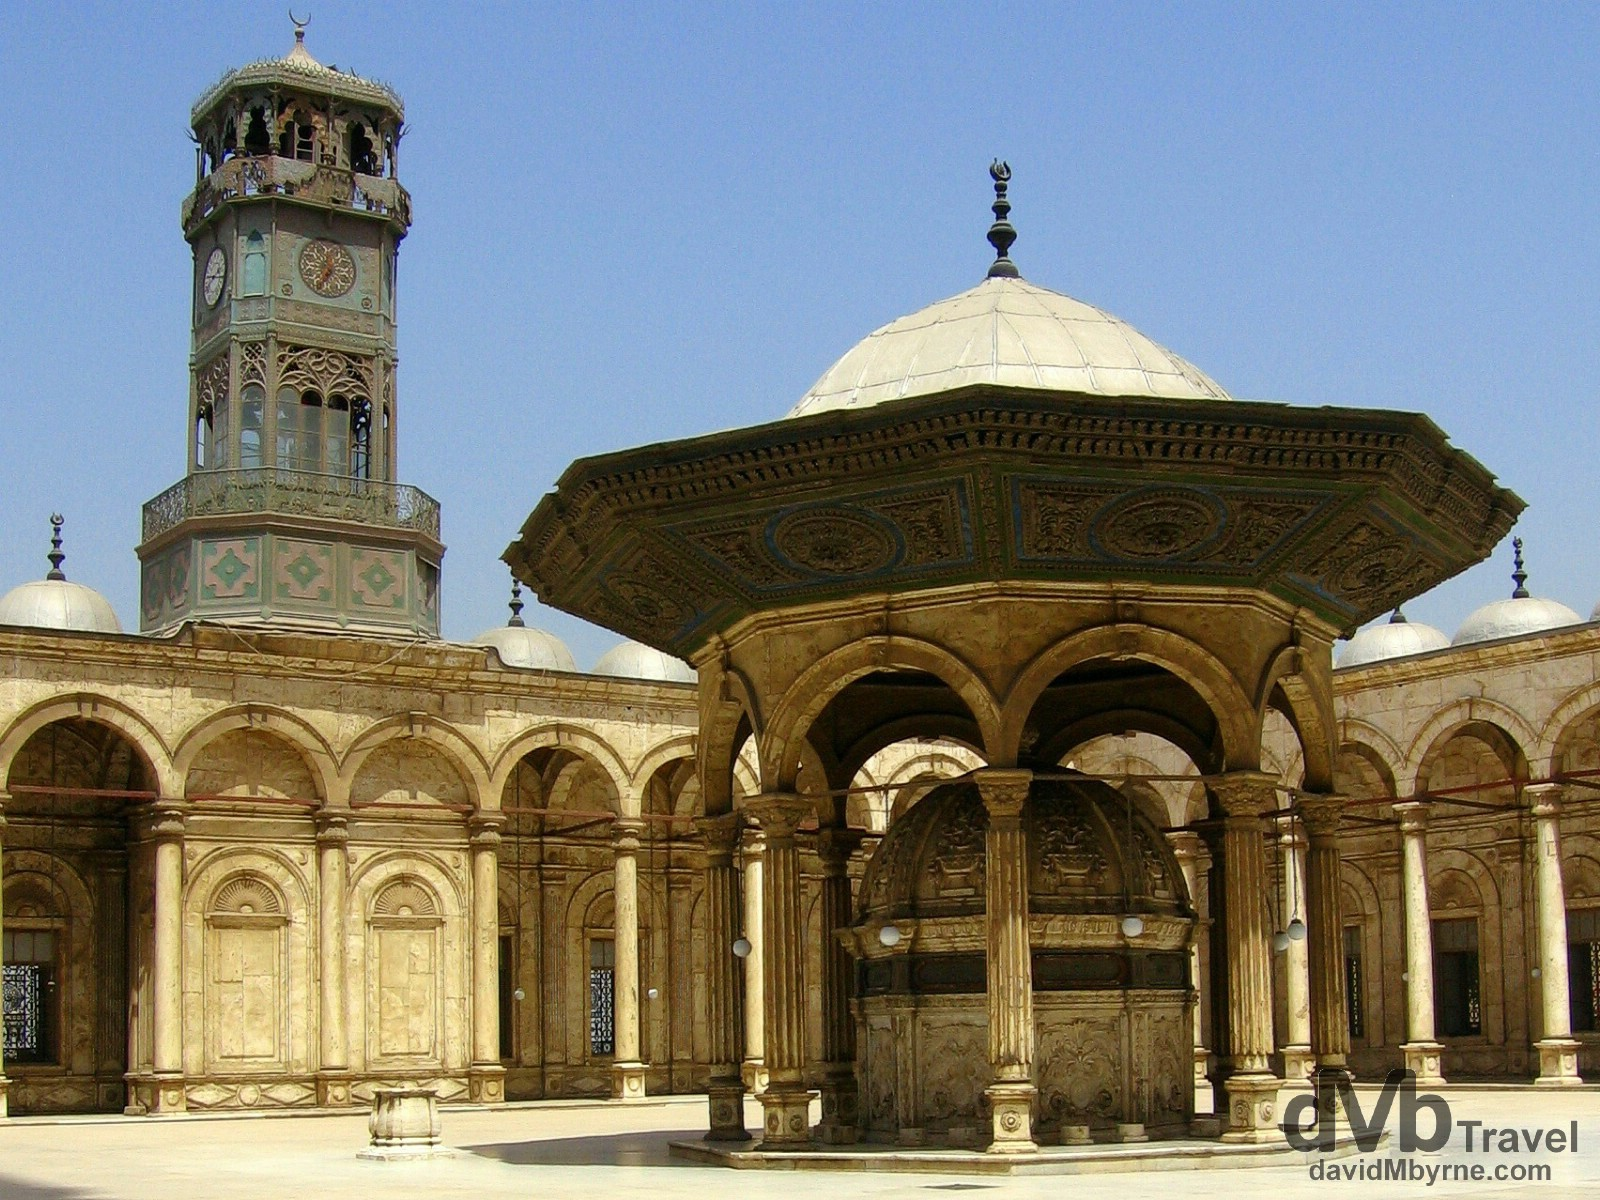 courtyard, Mohammed Ali Mosque, Saladin Citadel, Cairo, Egypt